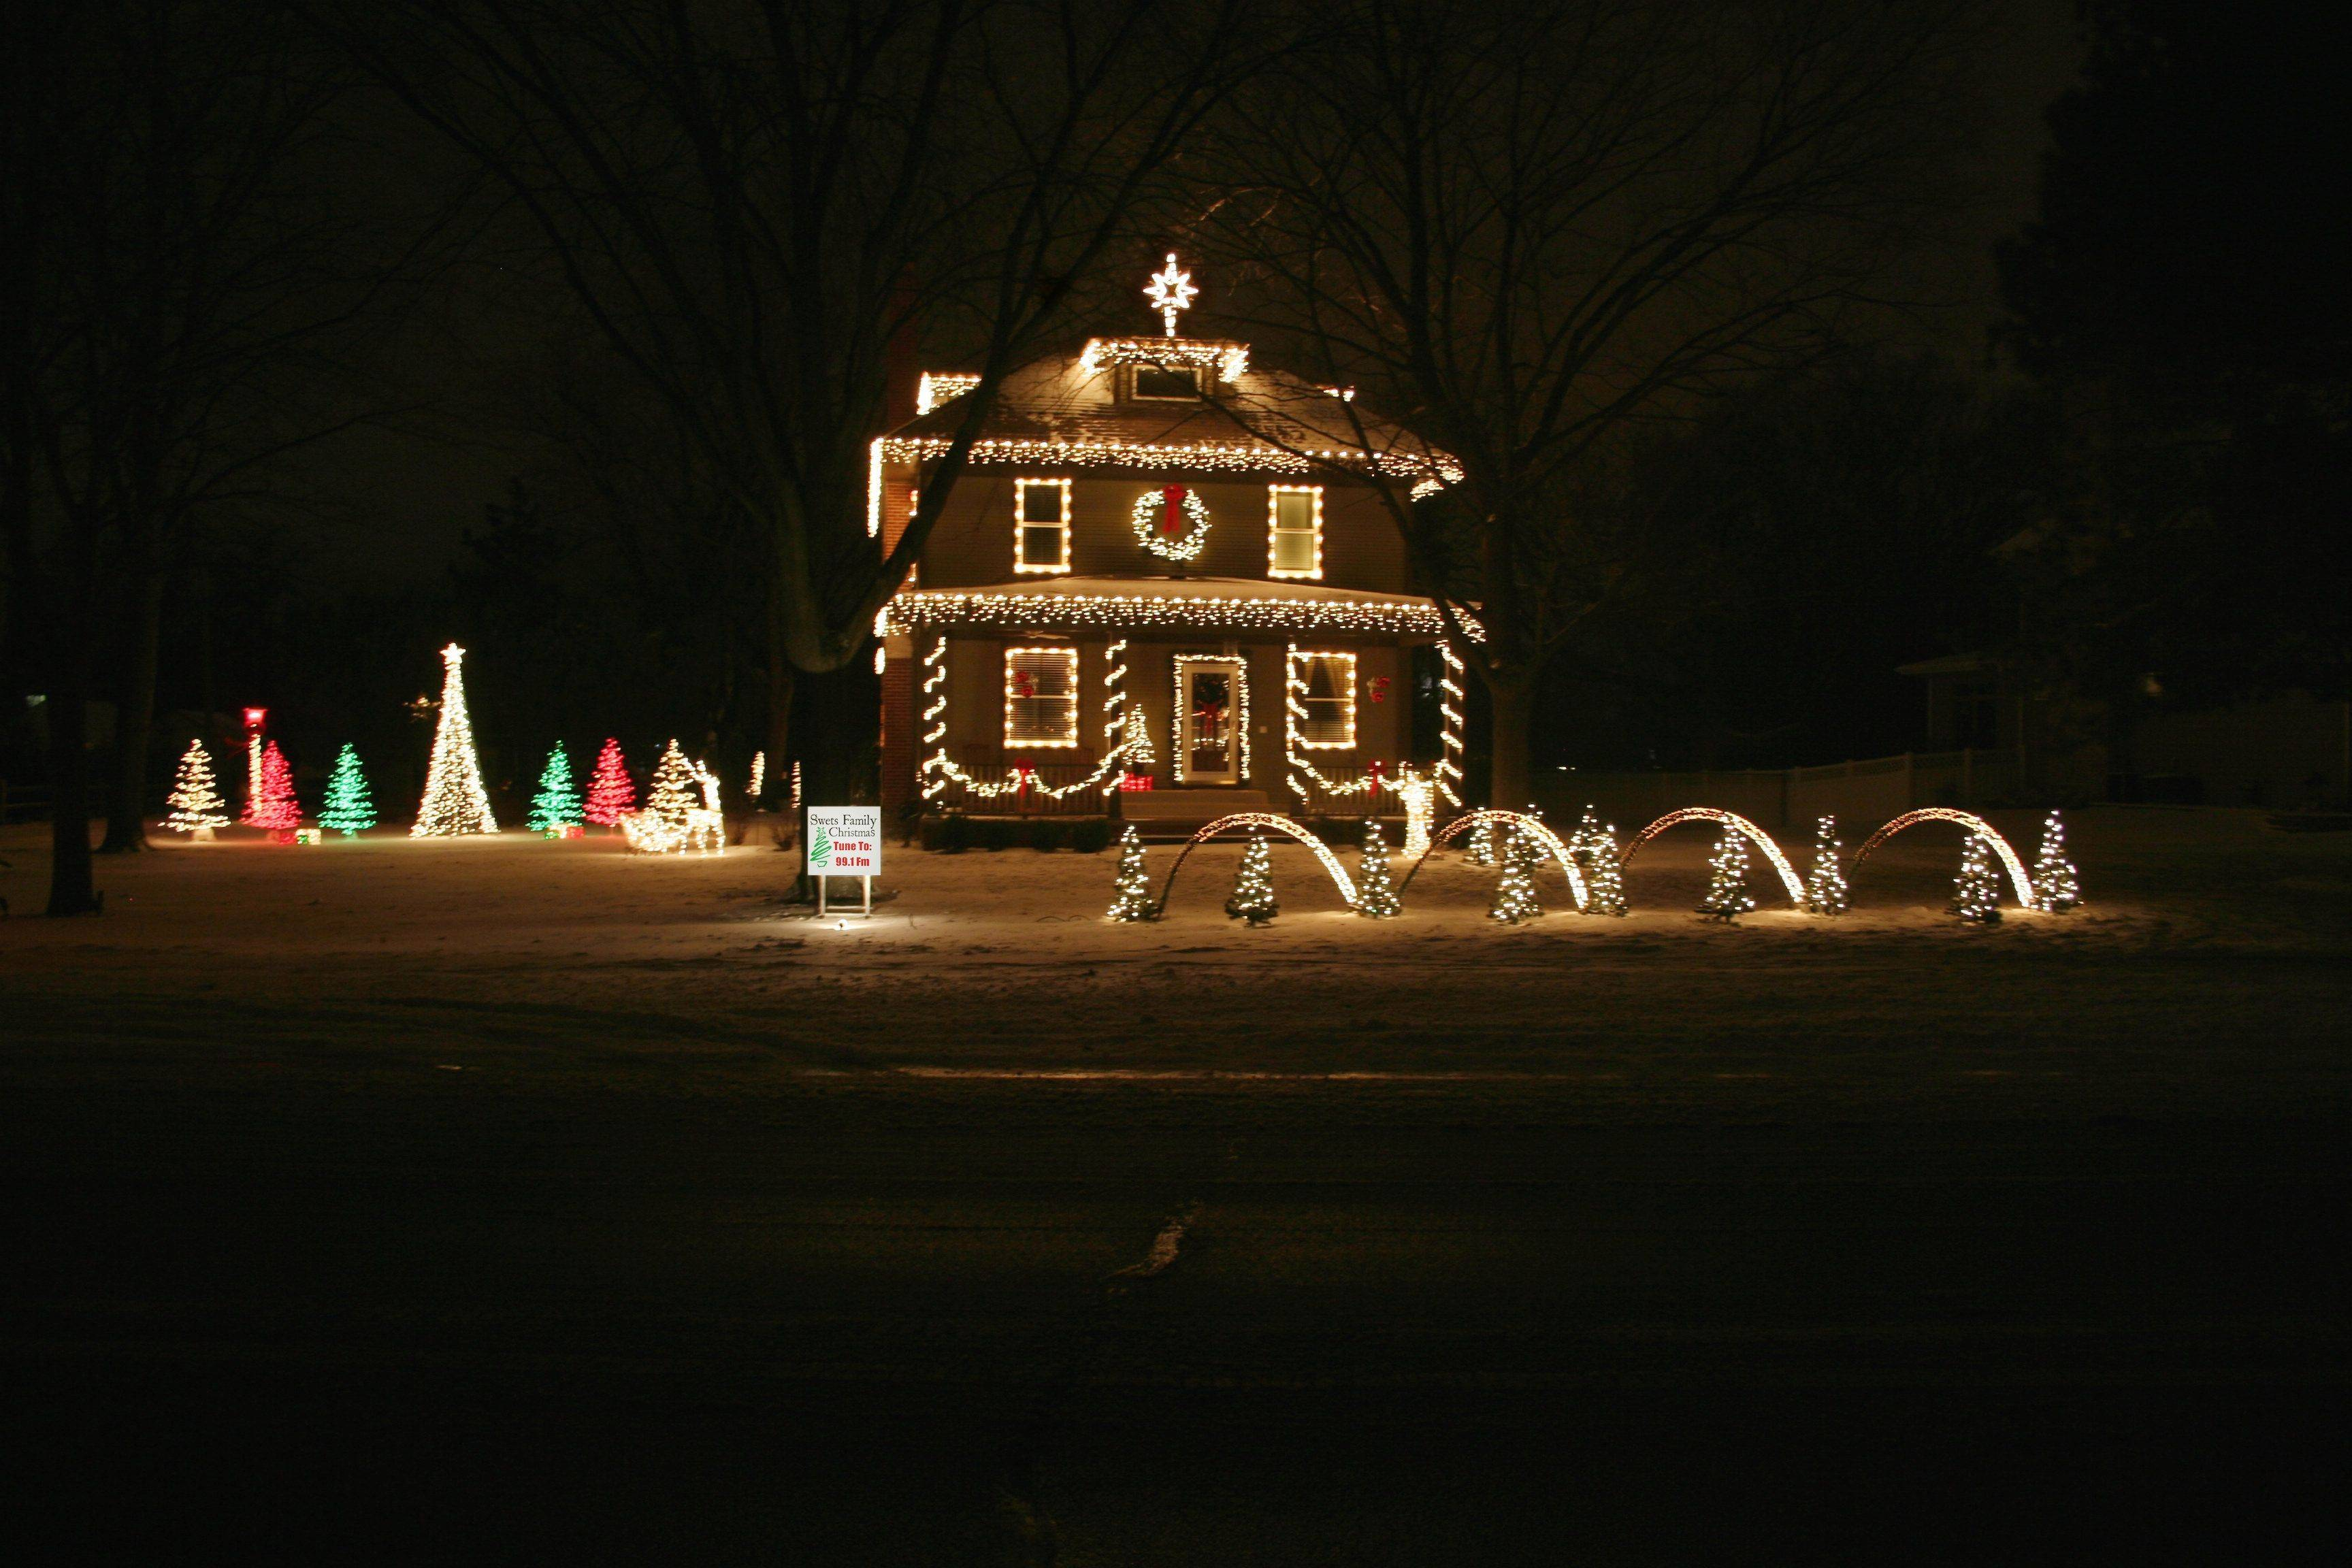 Eric Swets' home at 516 N. Arlington Heights Road in Itasca casts a warm holiday glow.